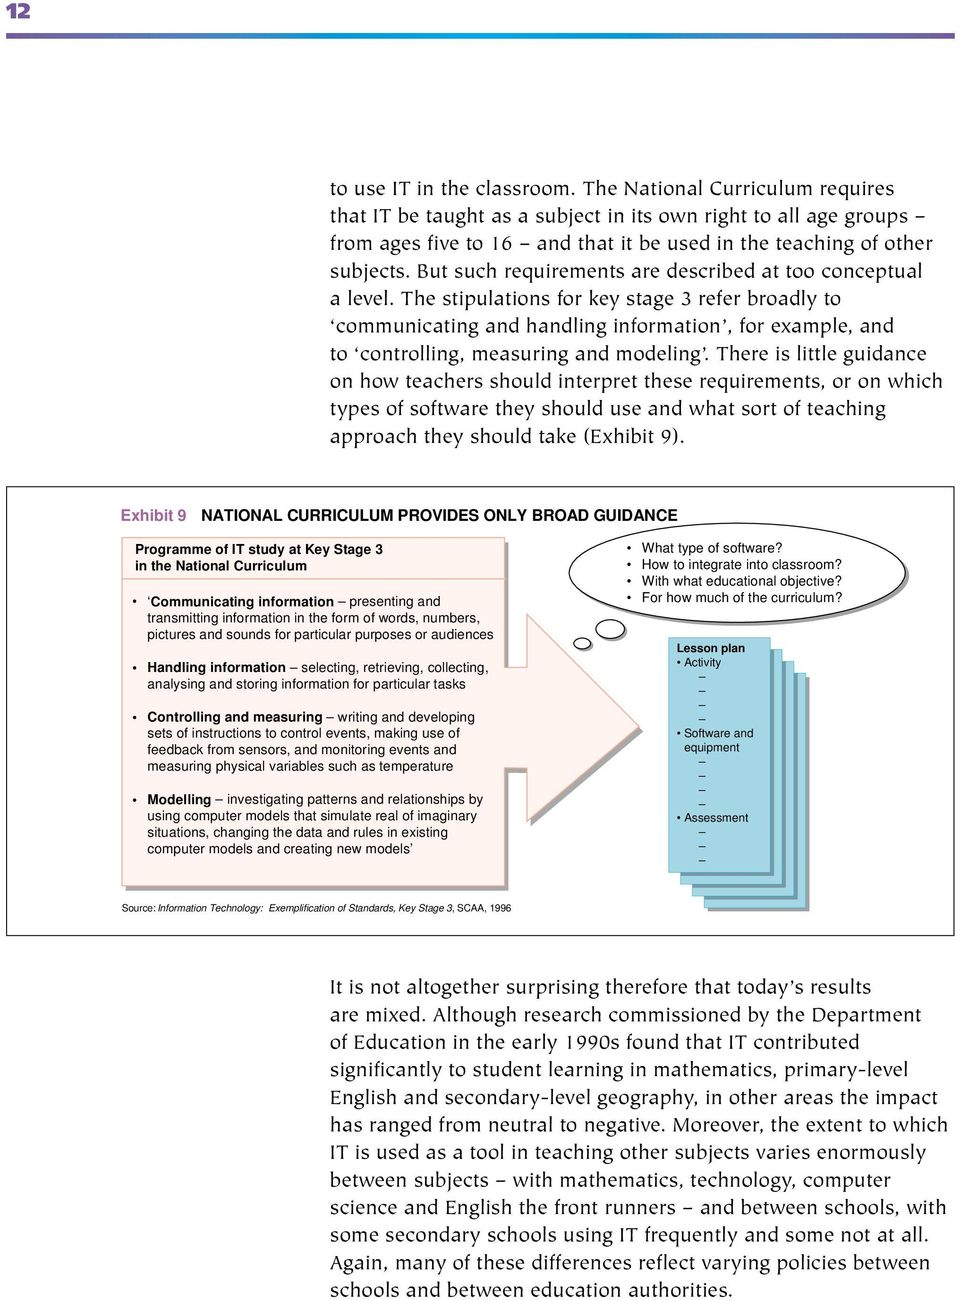 But such requirements are described at too conceptual a level.